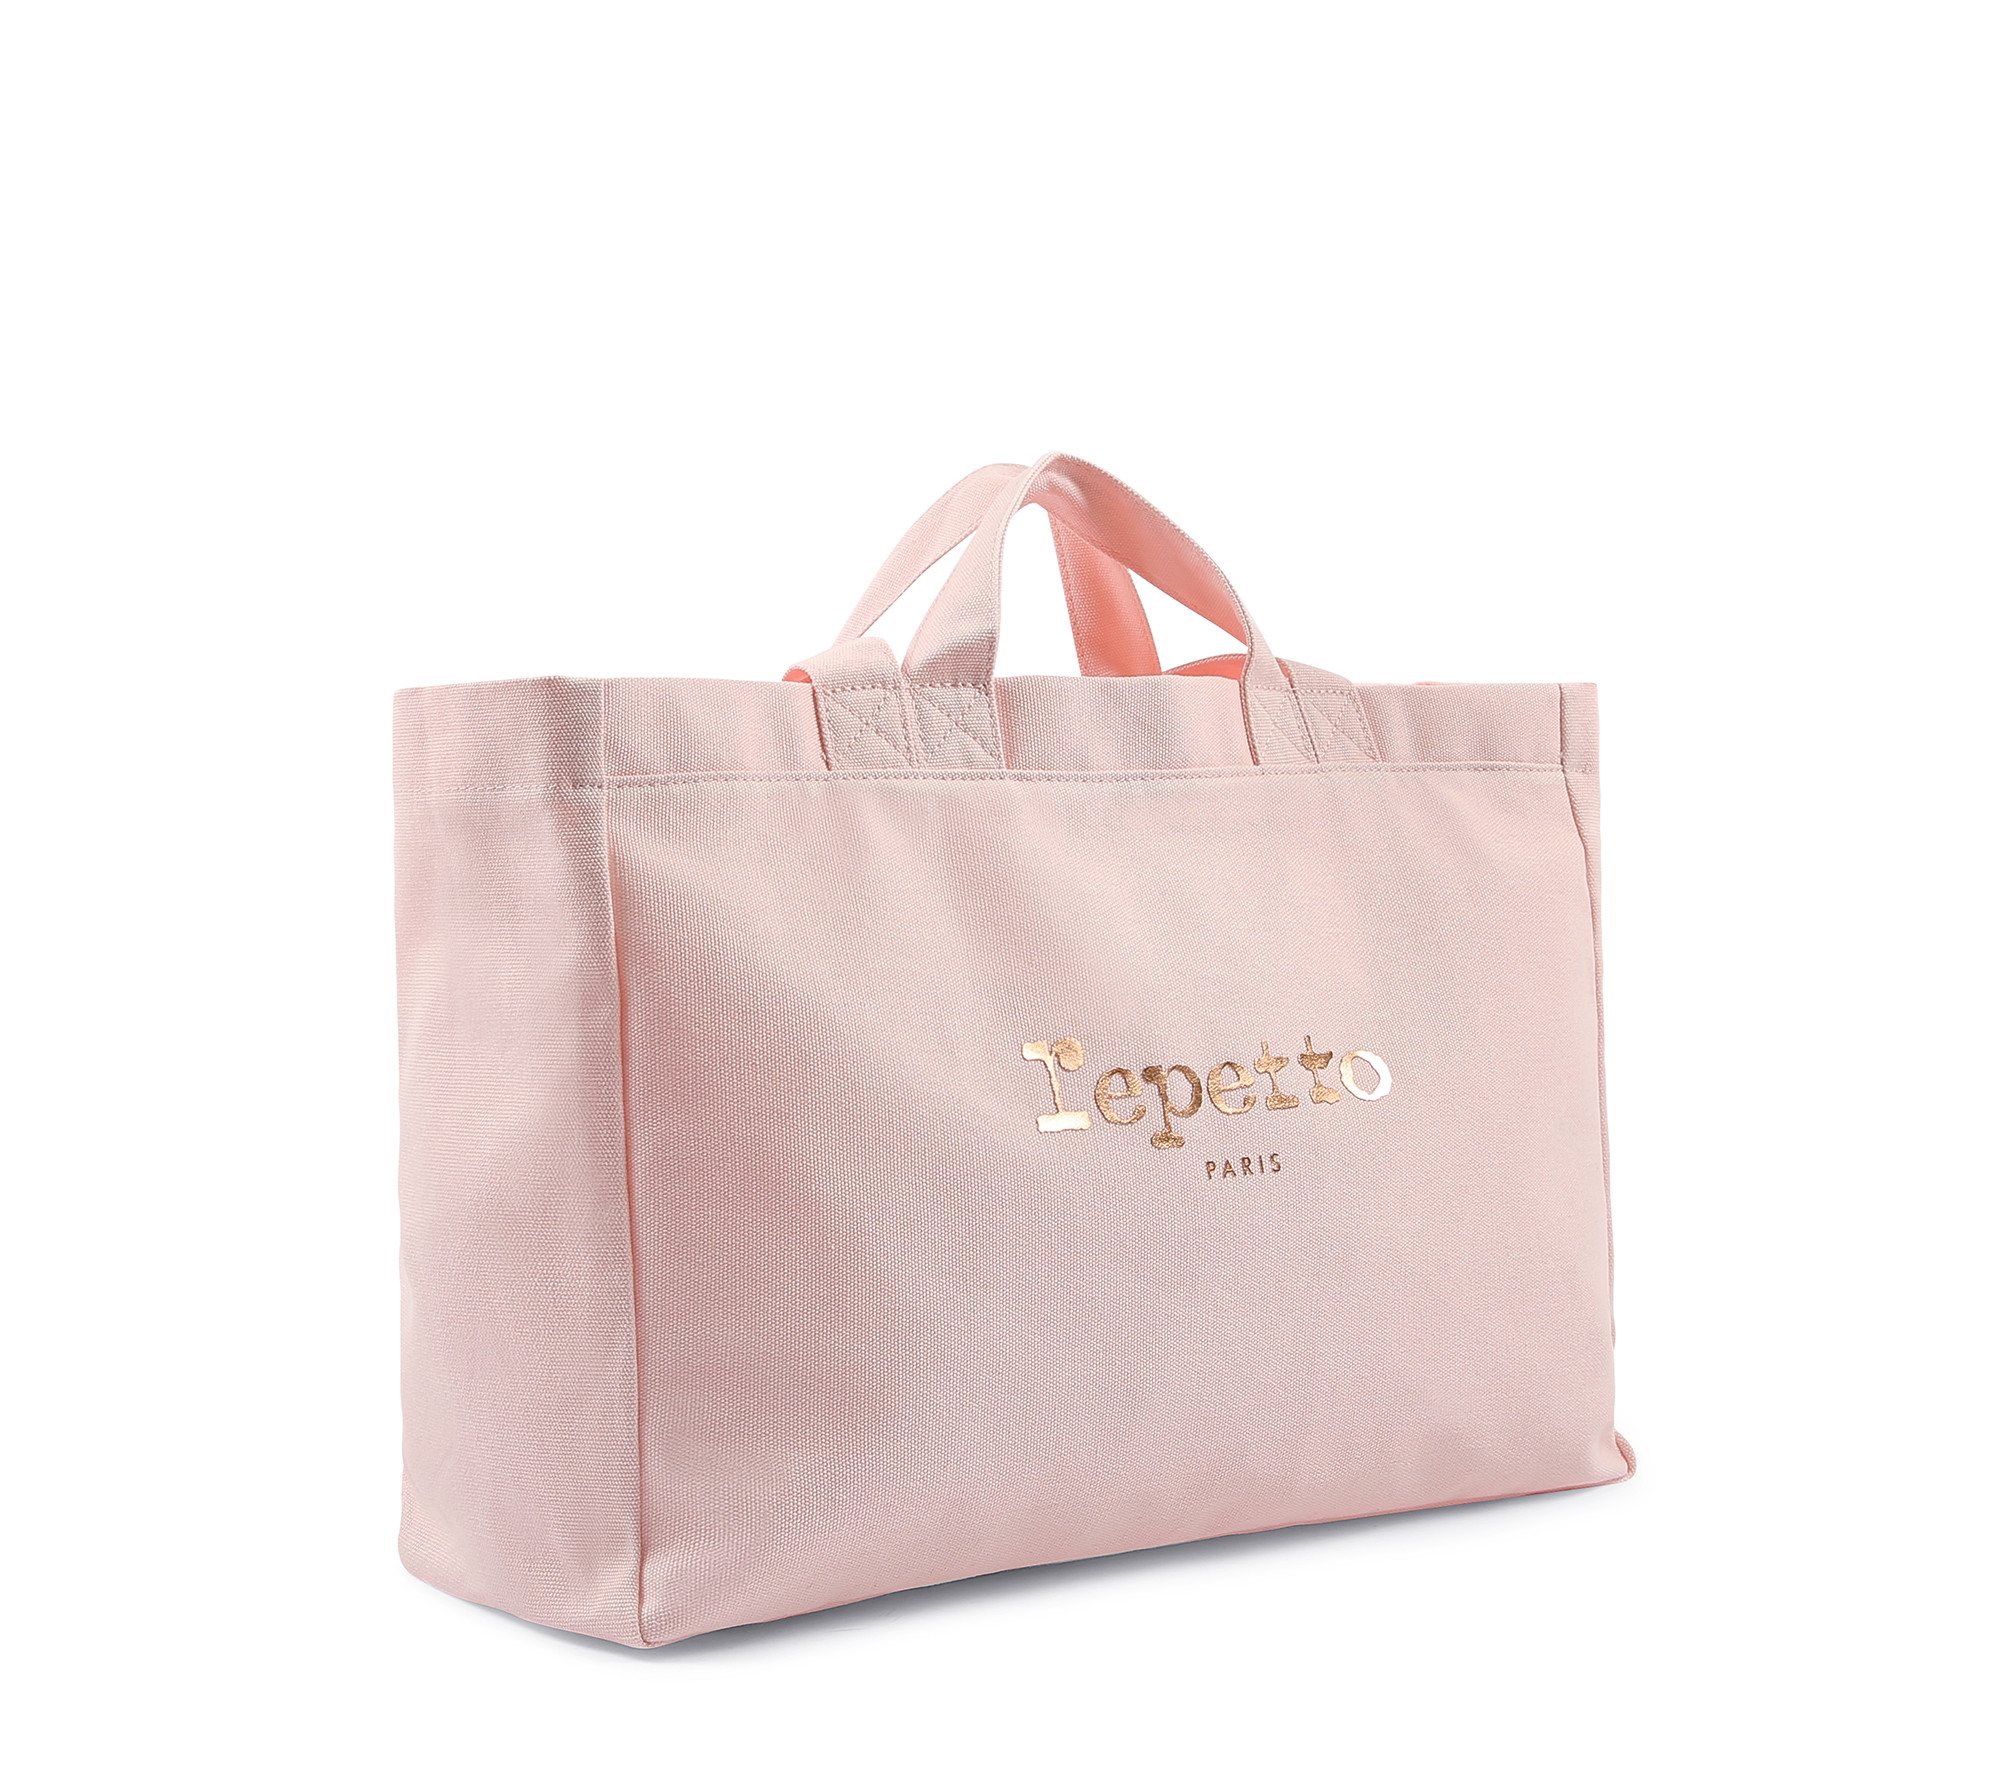 Ballerine shopping bag - Girl